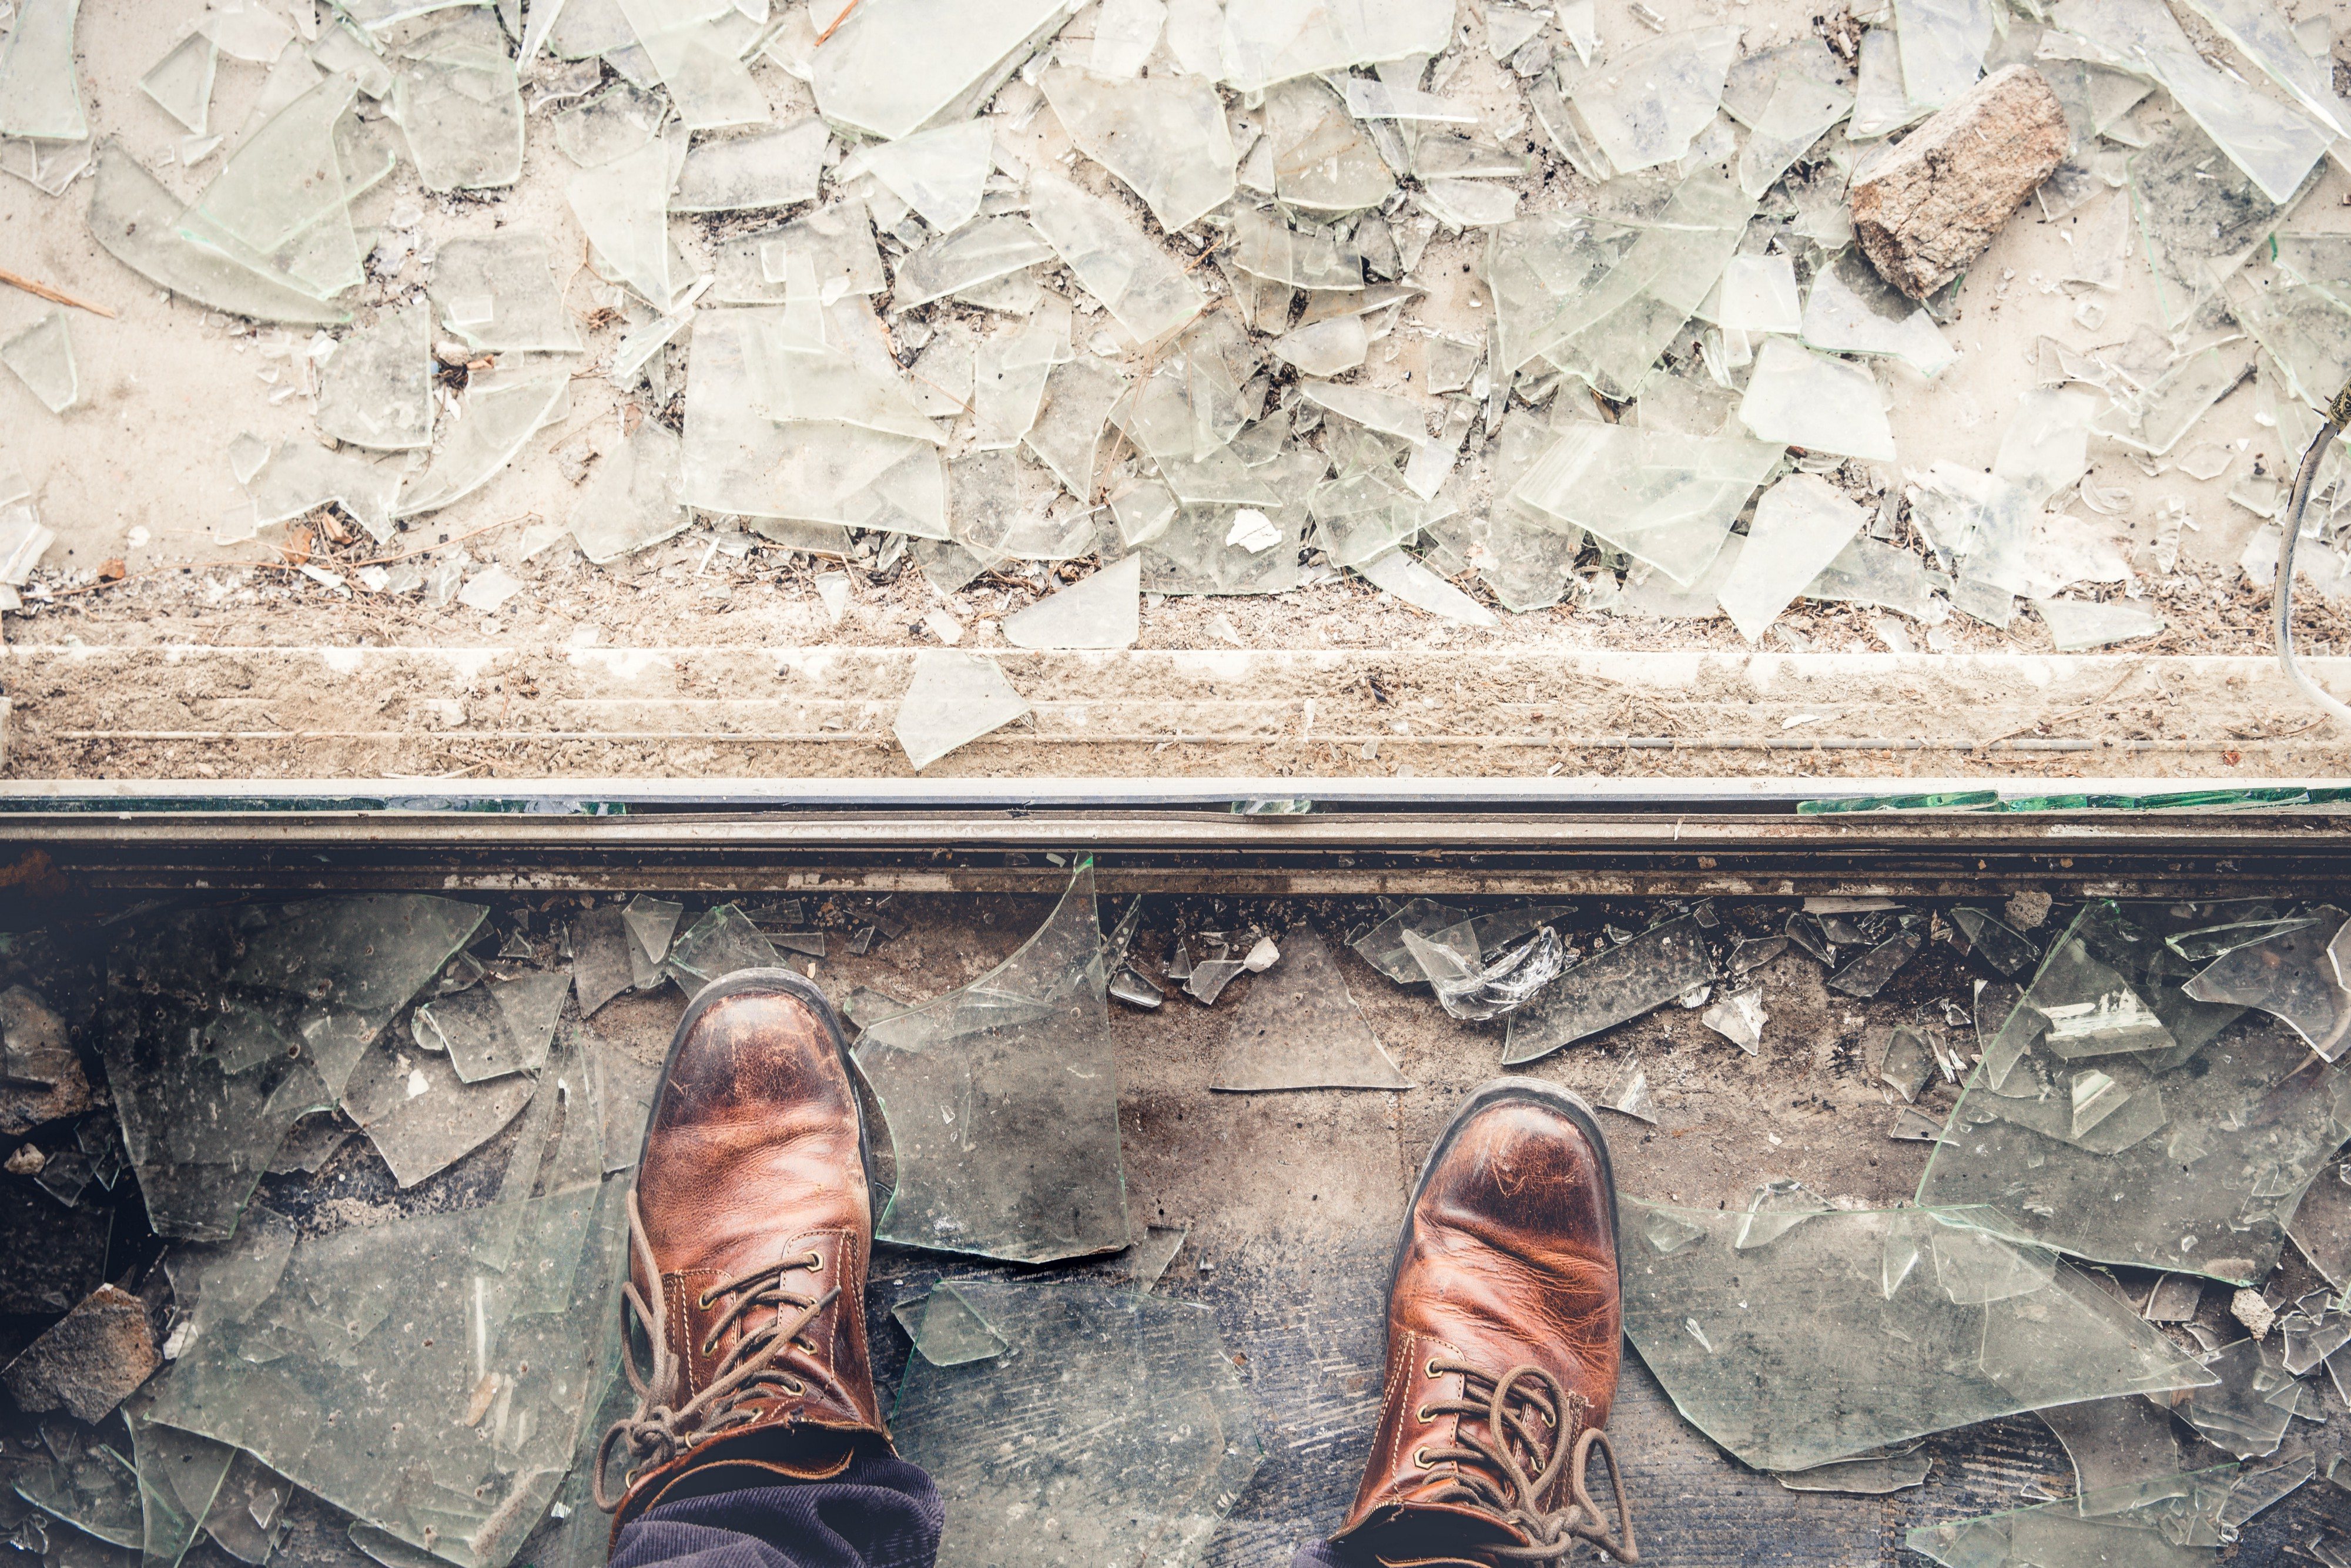 A pair of brown work boots stand amidst a sea of broken glass